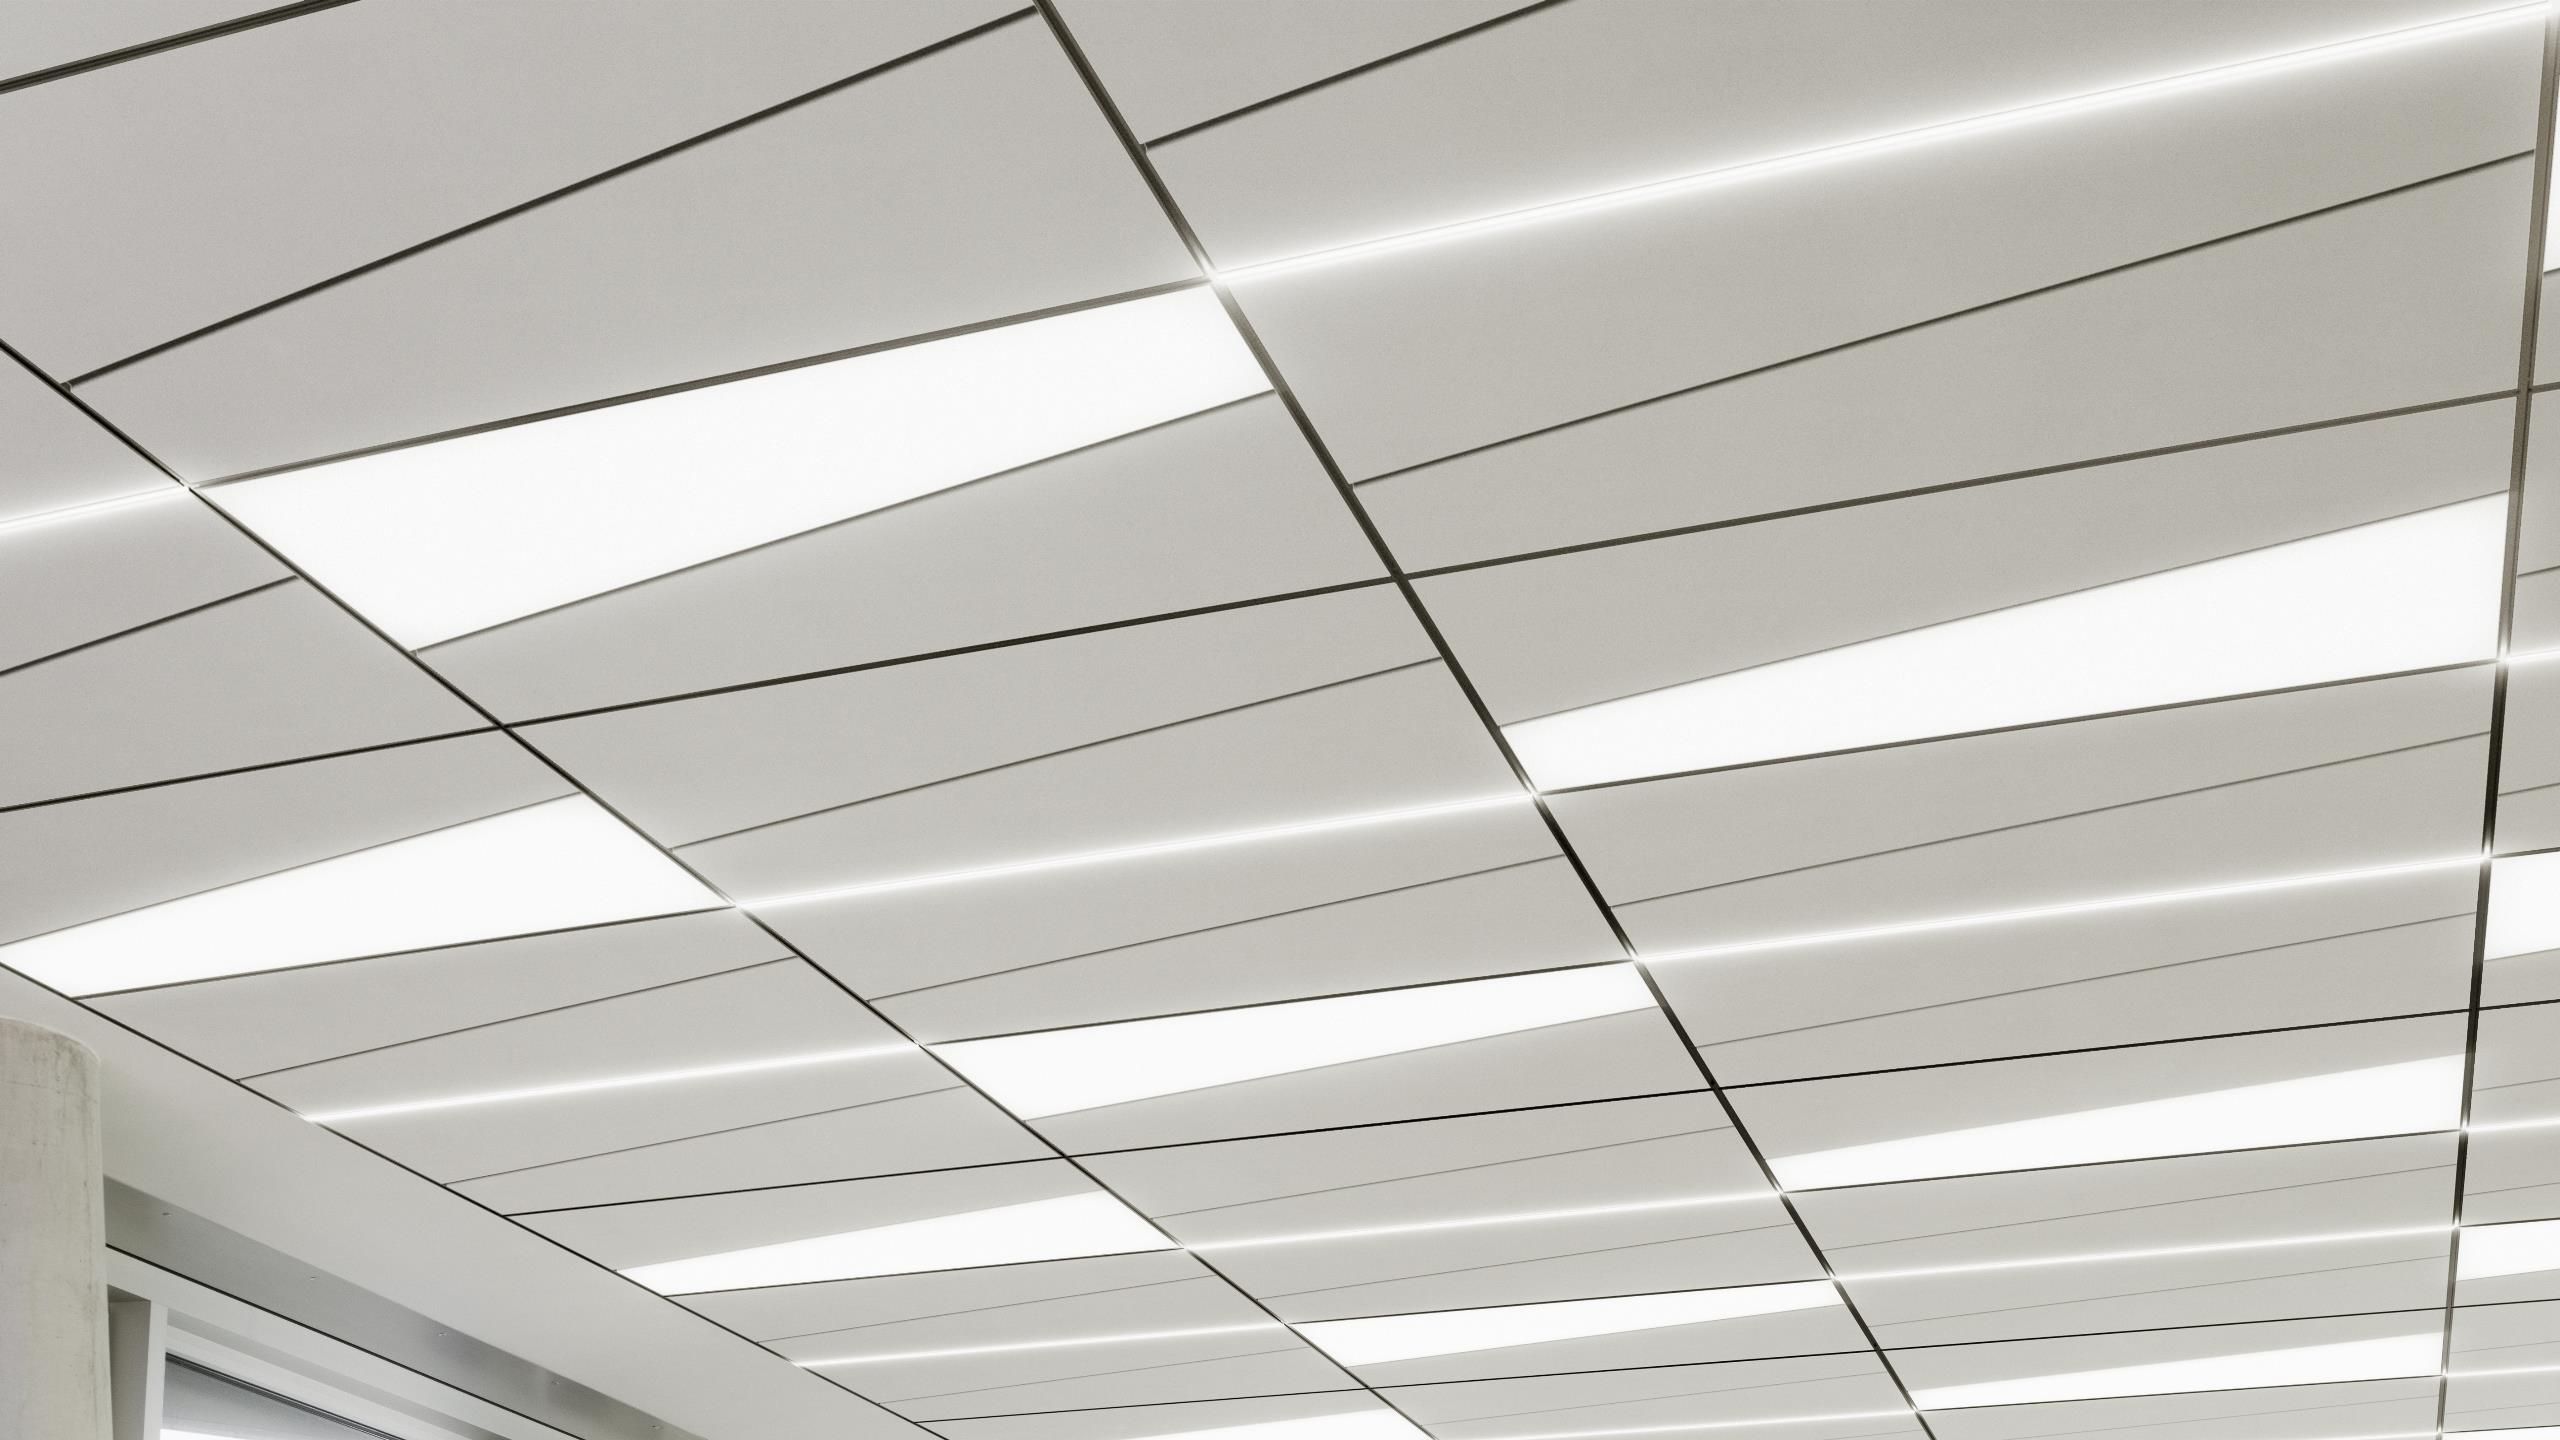 Merveilleux Office Ceiling Tiles   Google Search